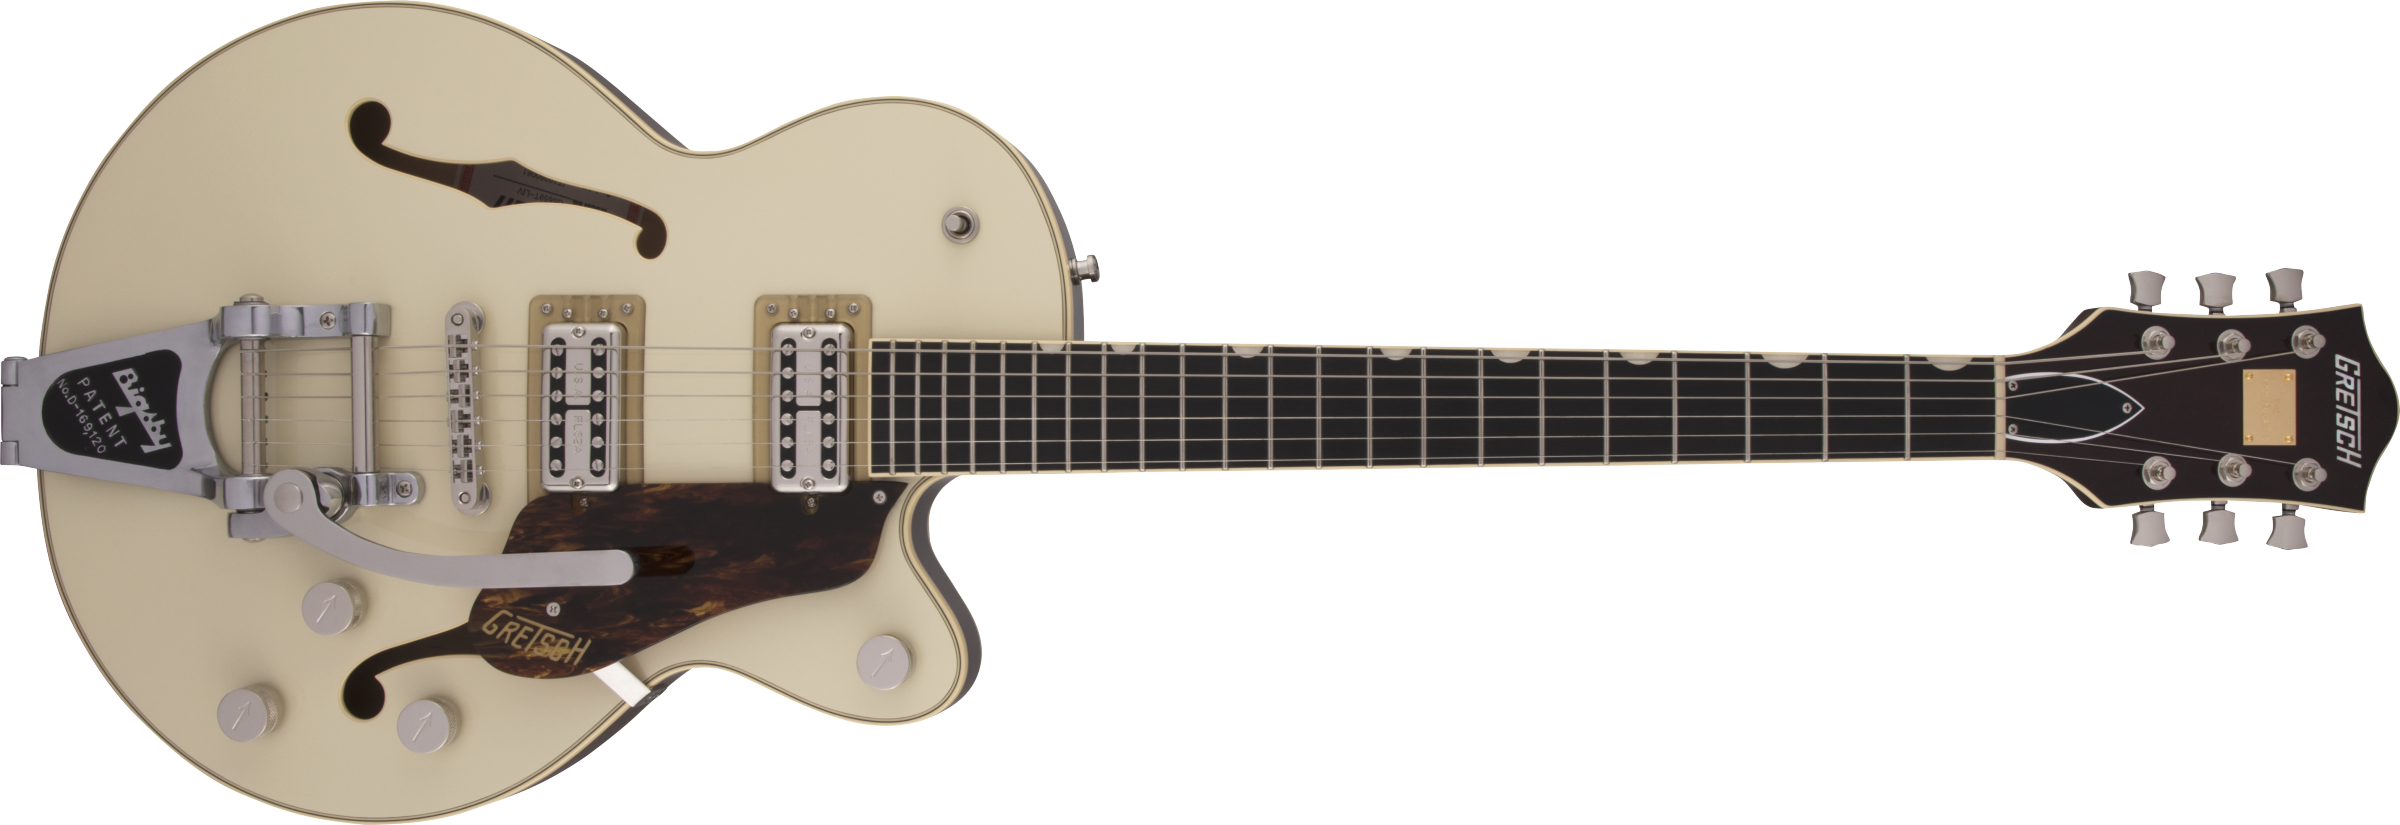 GRETSCH-G6659T-Players-Edition-Broadkaster-Jr-Center-Block-Single-Cut-with-String-Thru-Bigsby-USA-FullTron-Pickups-Ebony-Fingerboard-Two-Tone-Lotus-Ivory-Walnut-Stain-sku-571004709